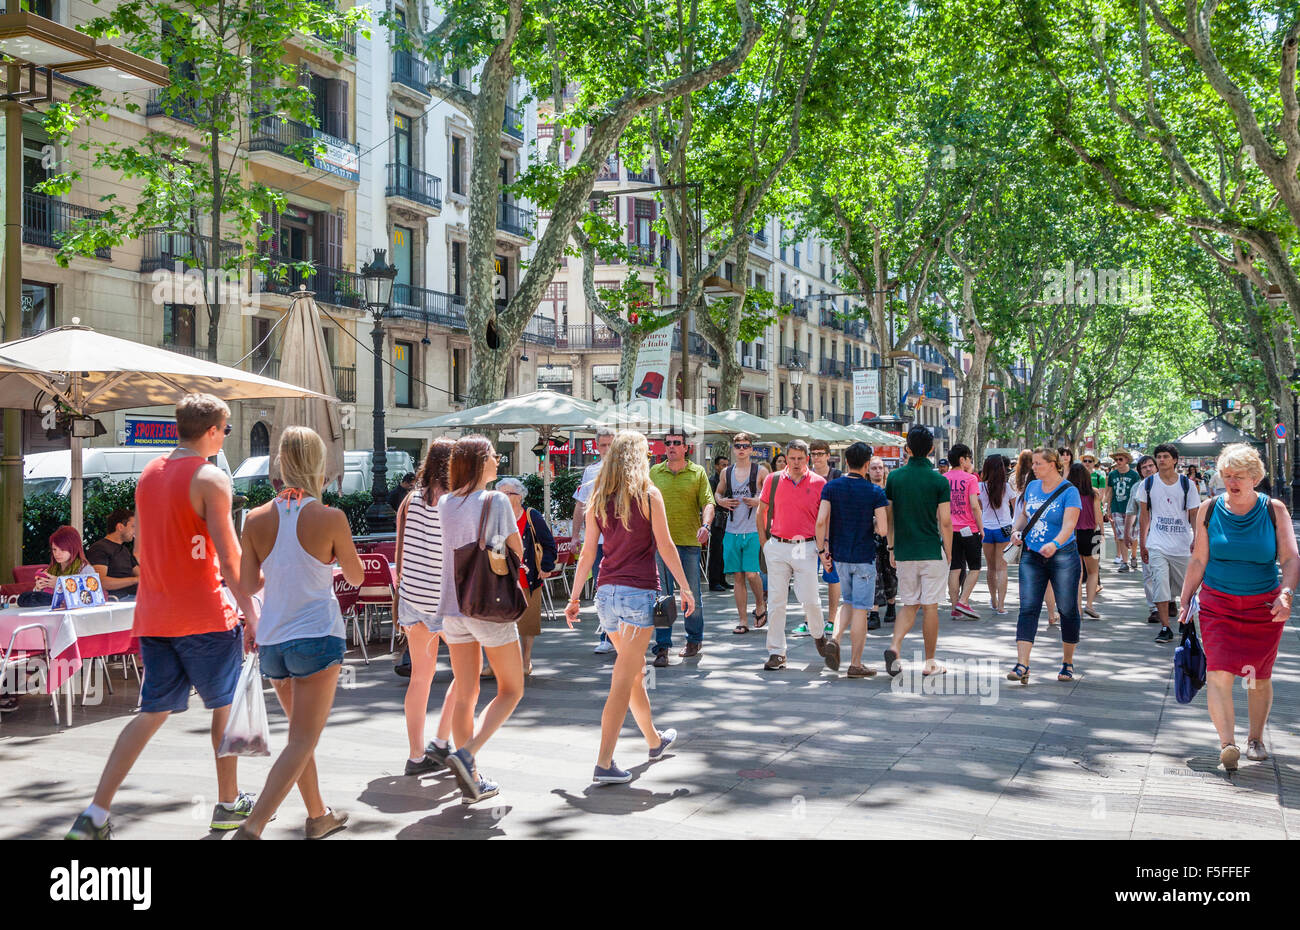 Spain, Catalonia, Barcelona, La Rambla, tree-lined pedestrian mall, popular with tourists and locals alike - Stock Image